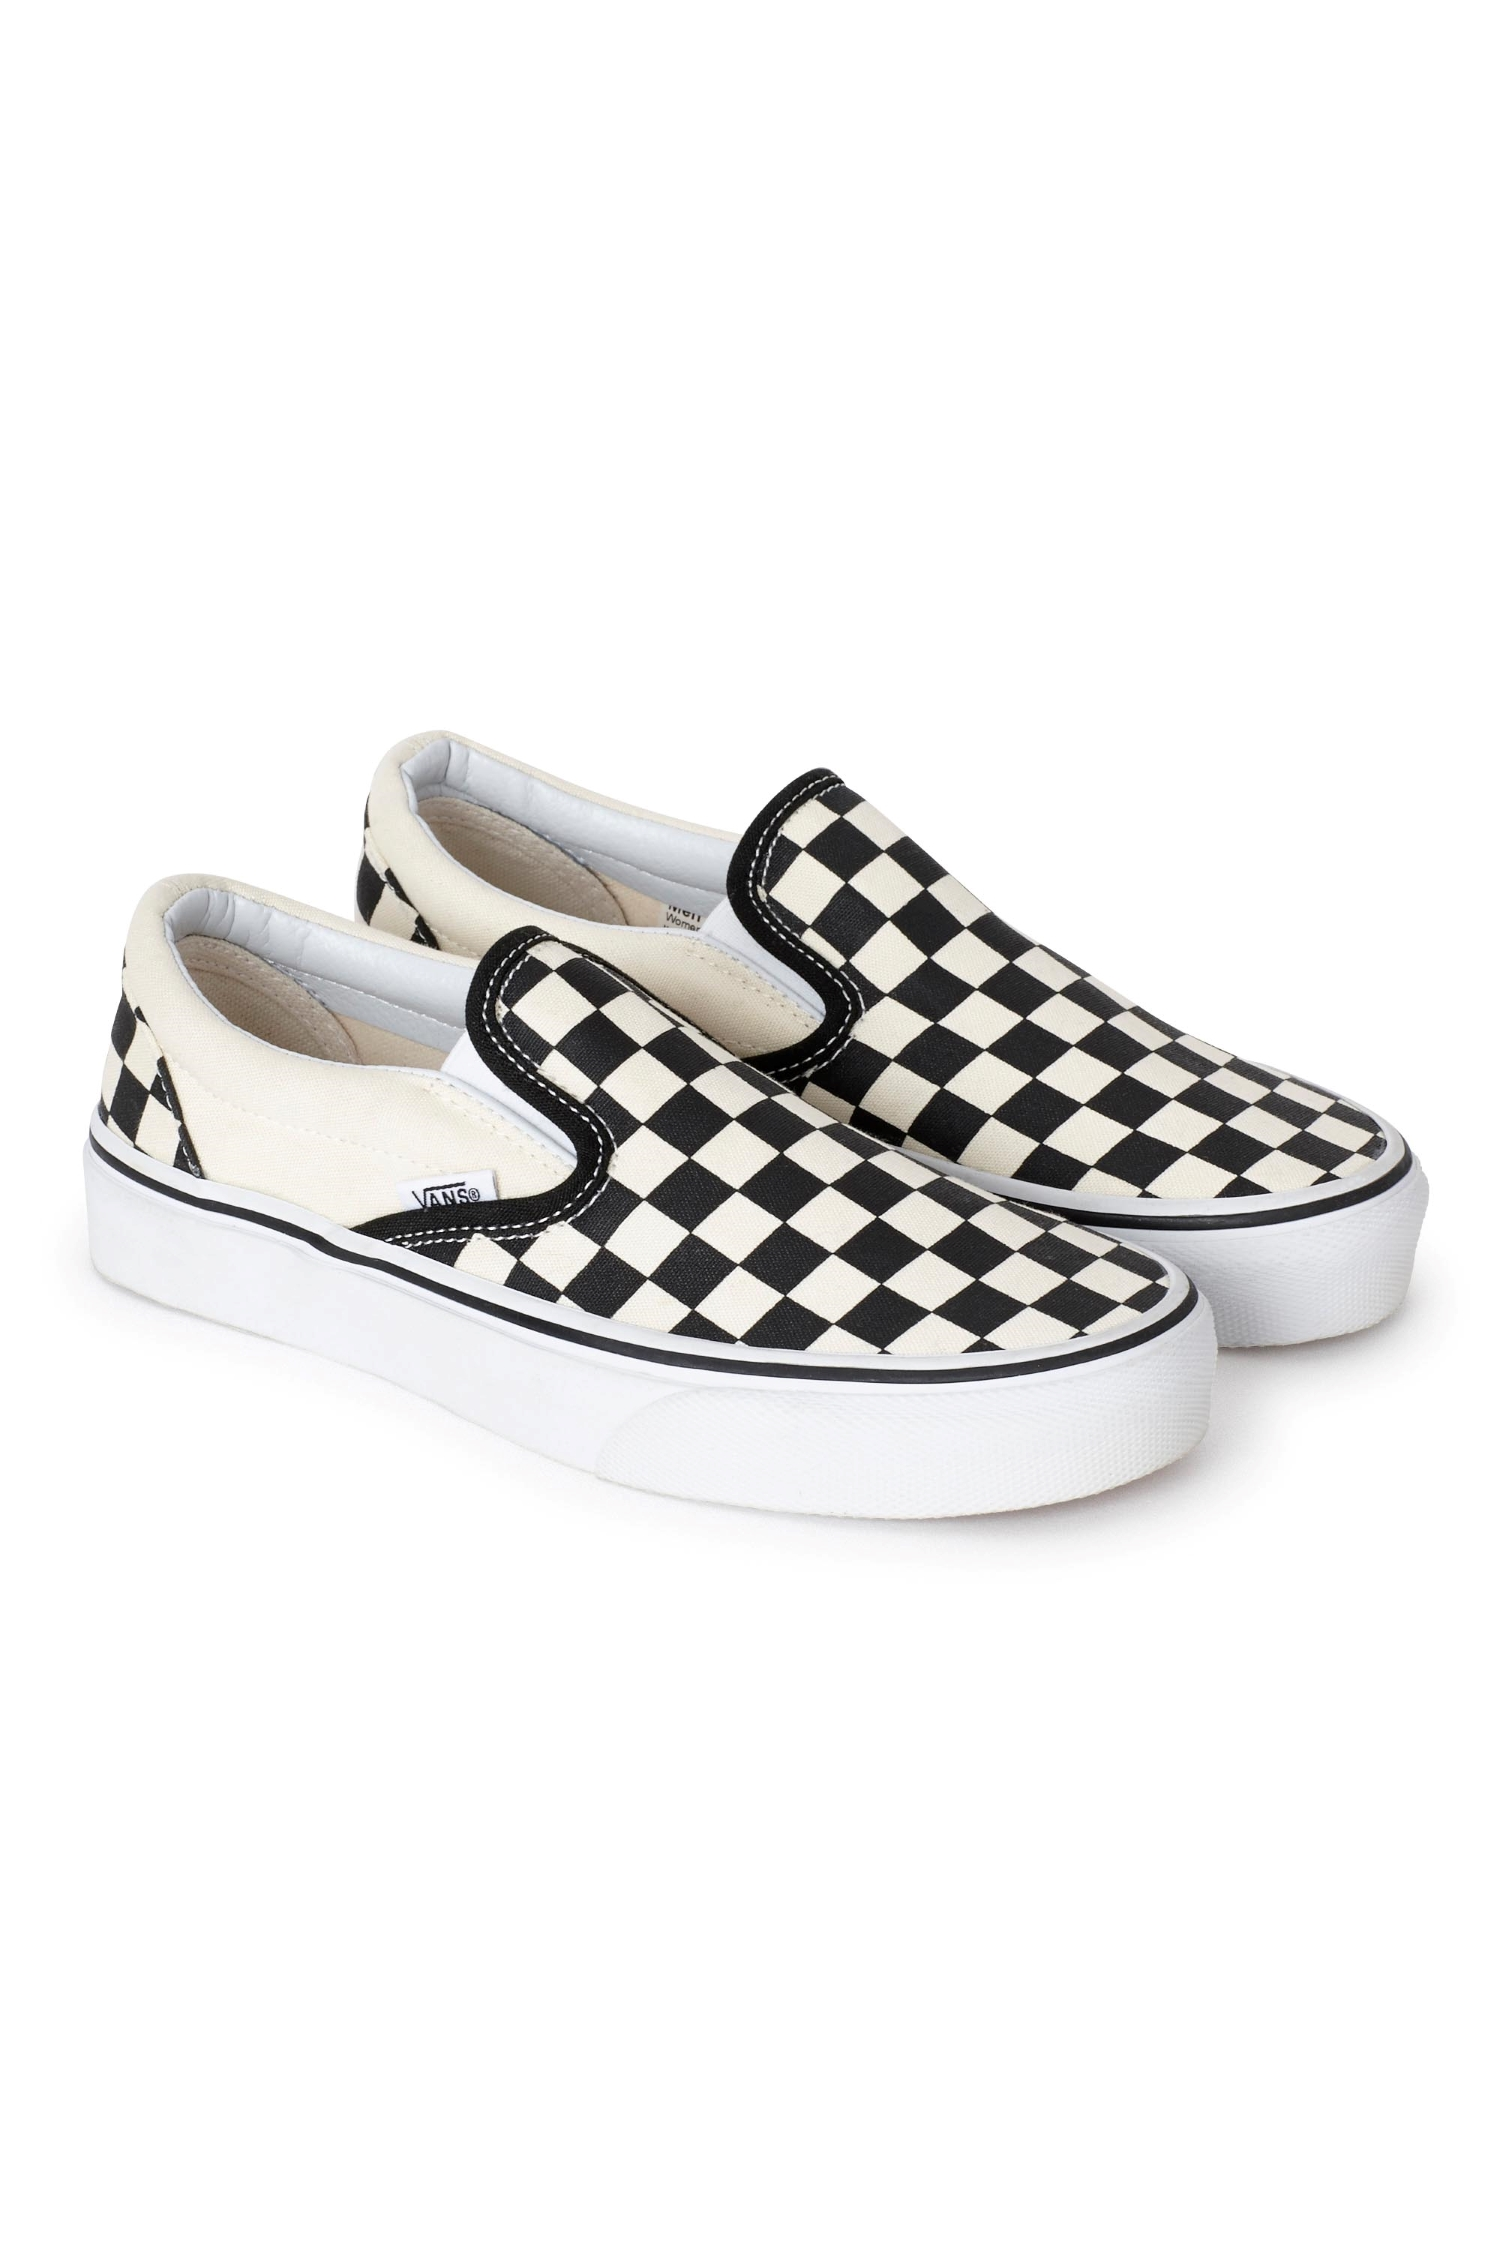 Vans Slip On Checkerboard